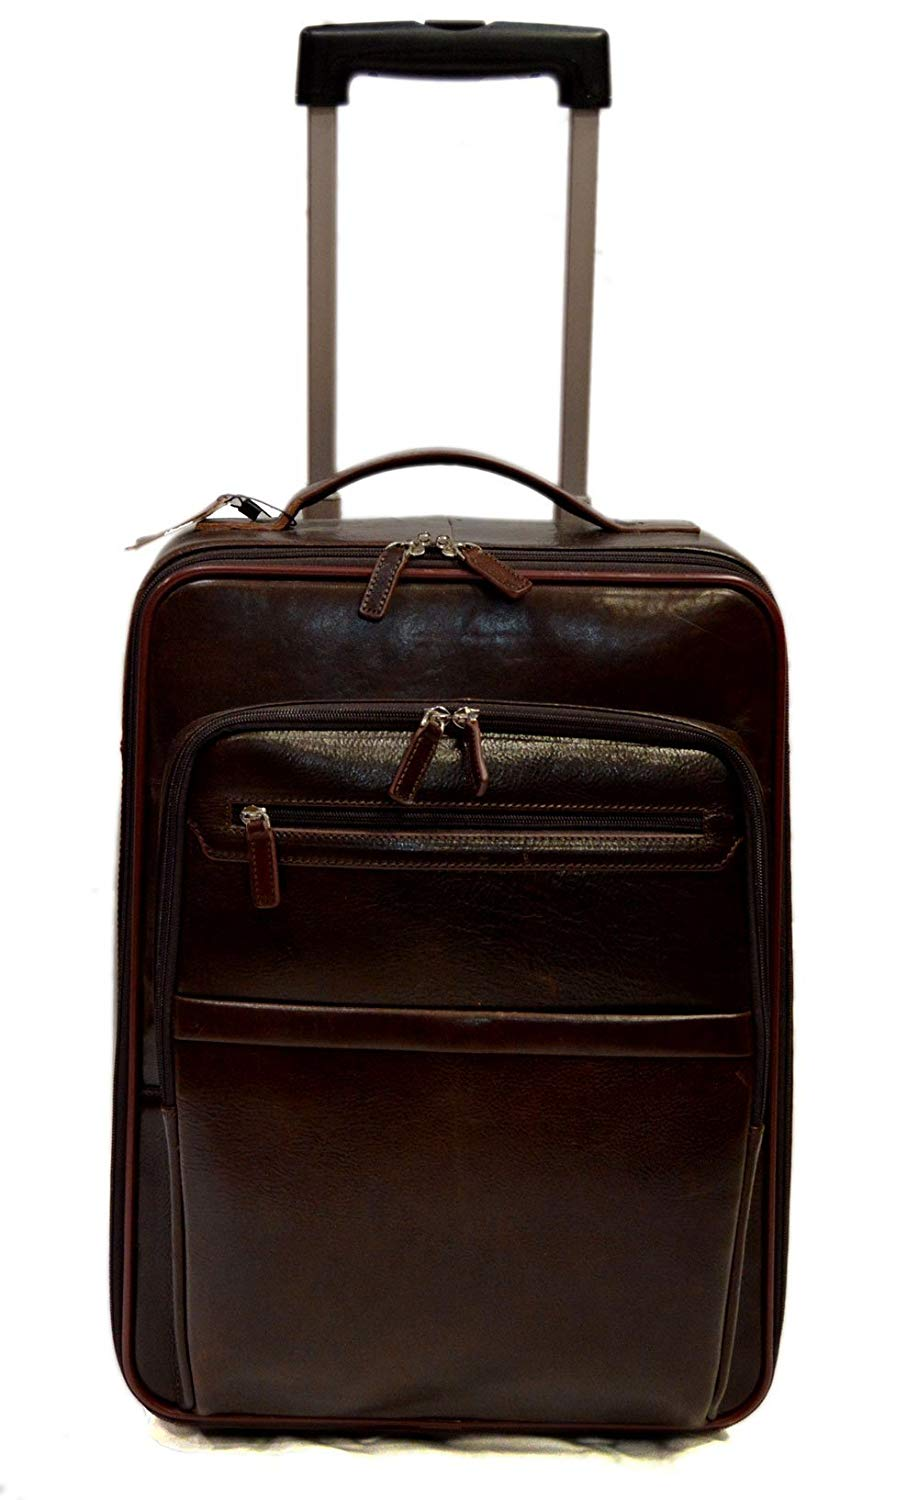 42d2bfaf1175 Get Quotations · Leather trolley travel bag dark brown overnight leather bag  with two wheels leather cabin luggage airplane